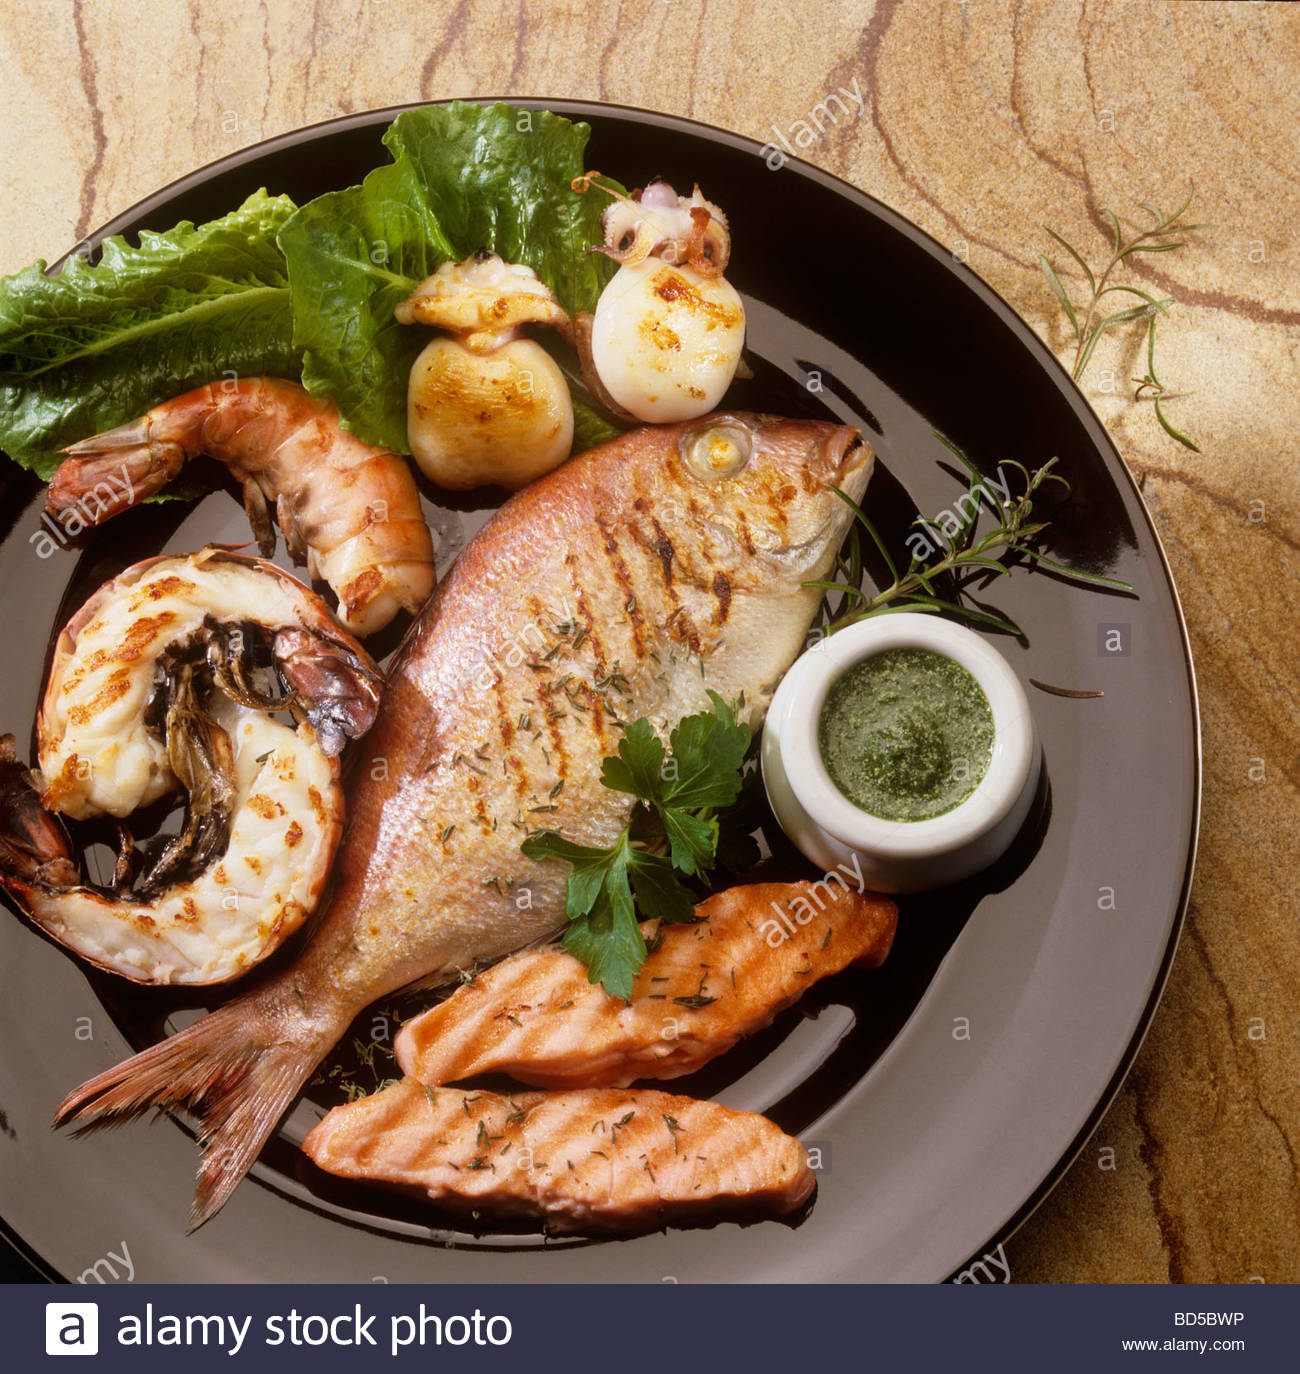 Fish and seafood platter stock photo royalty free image for Fish and seafood